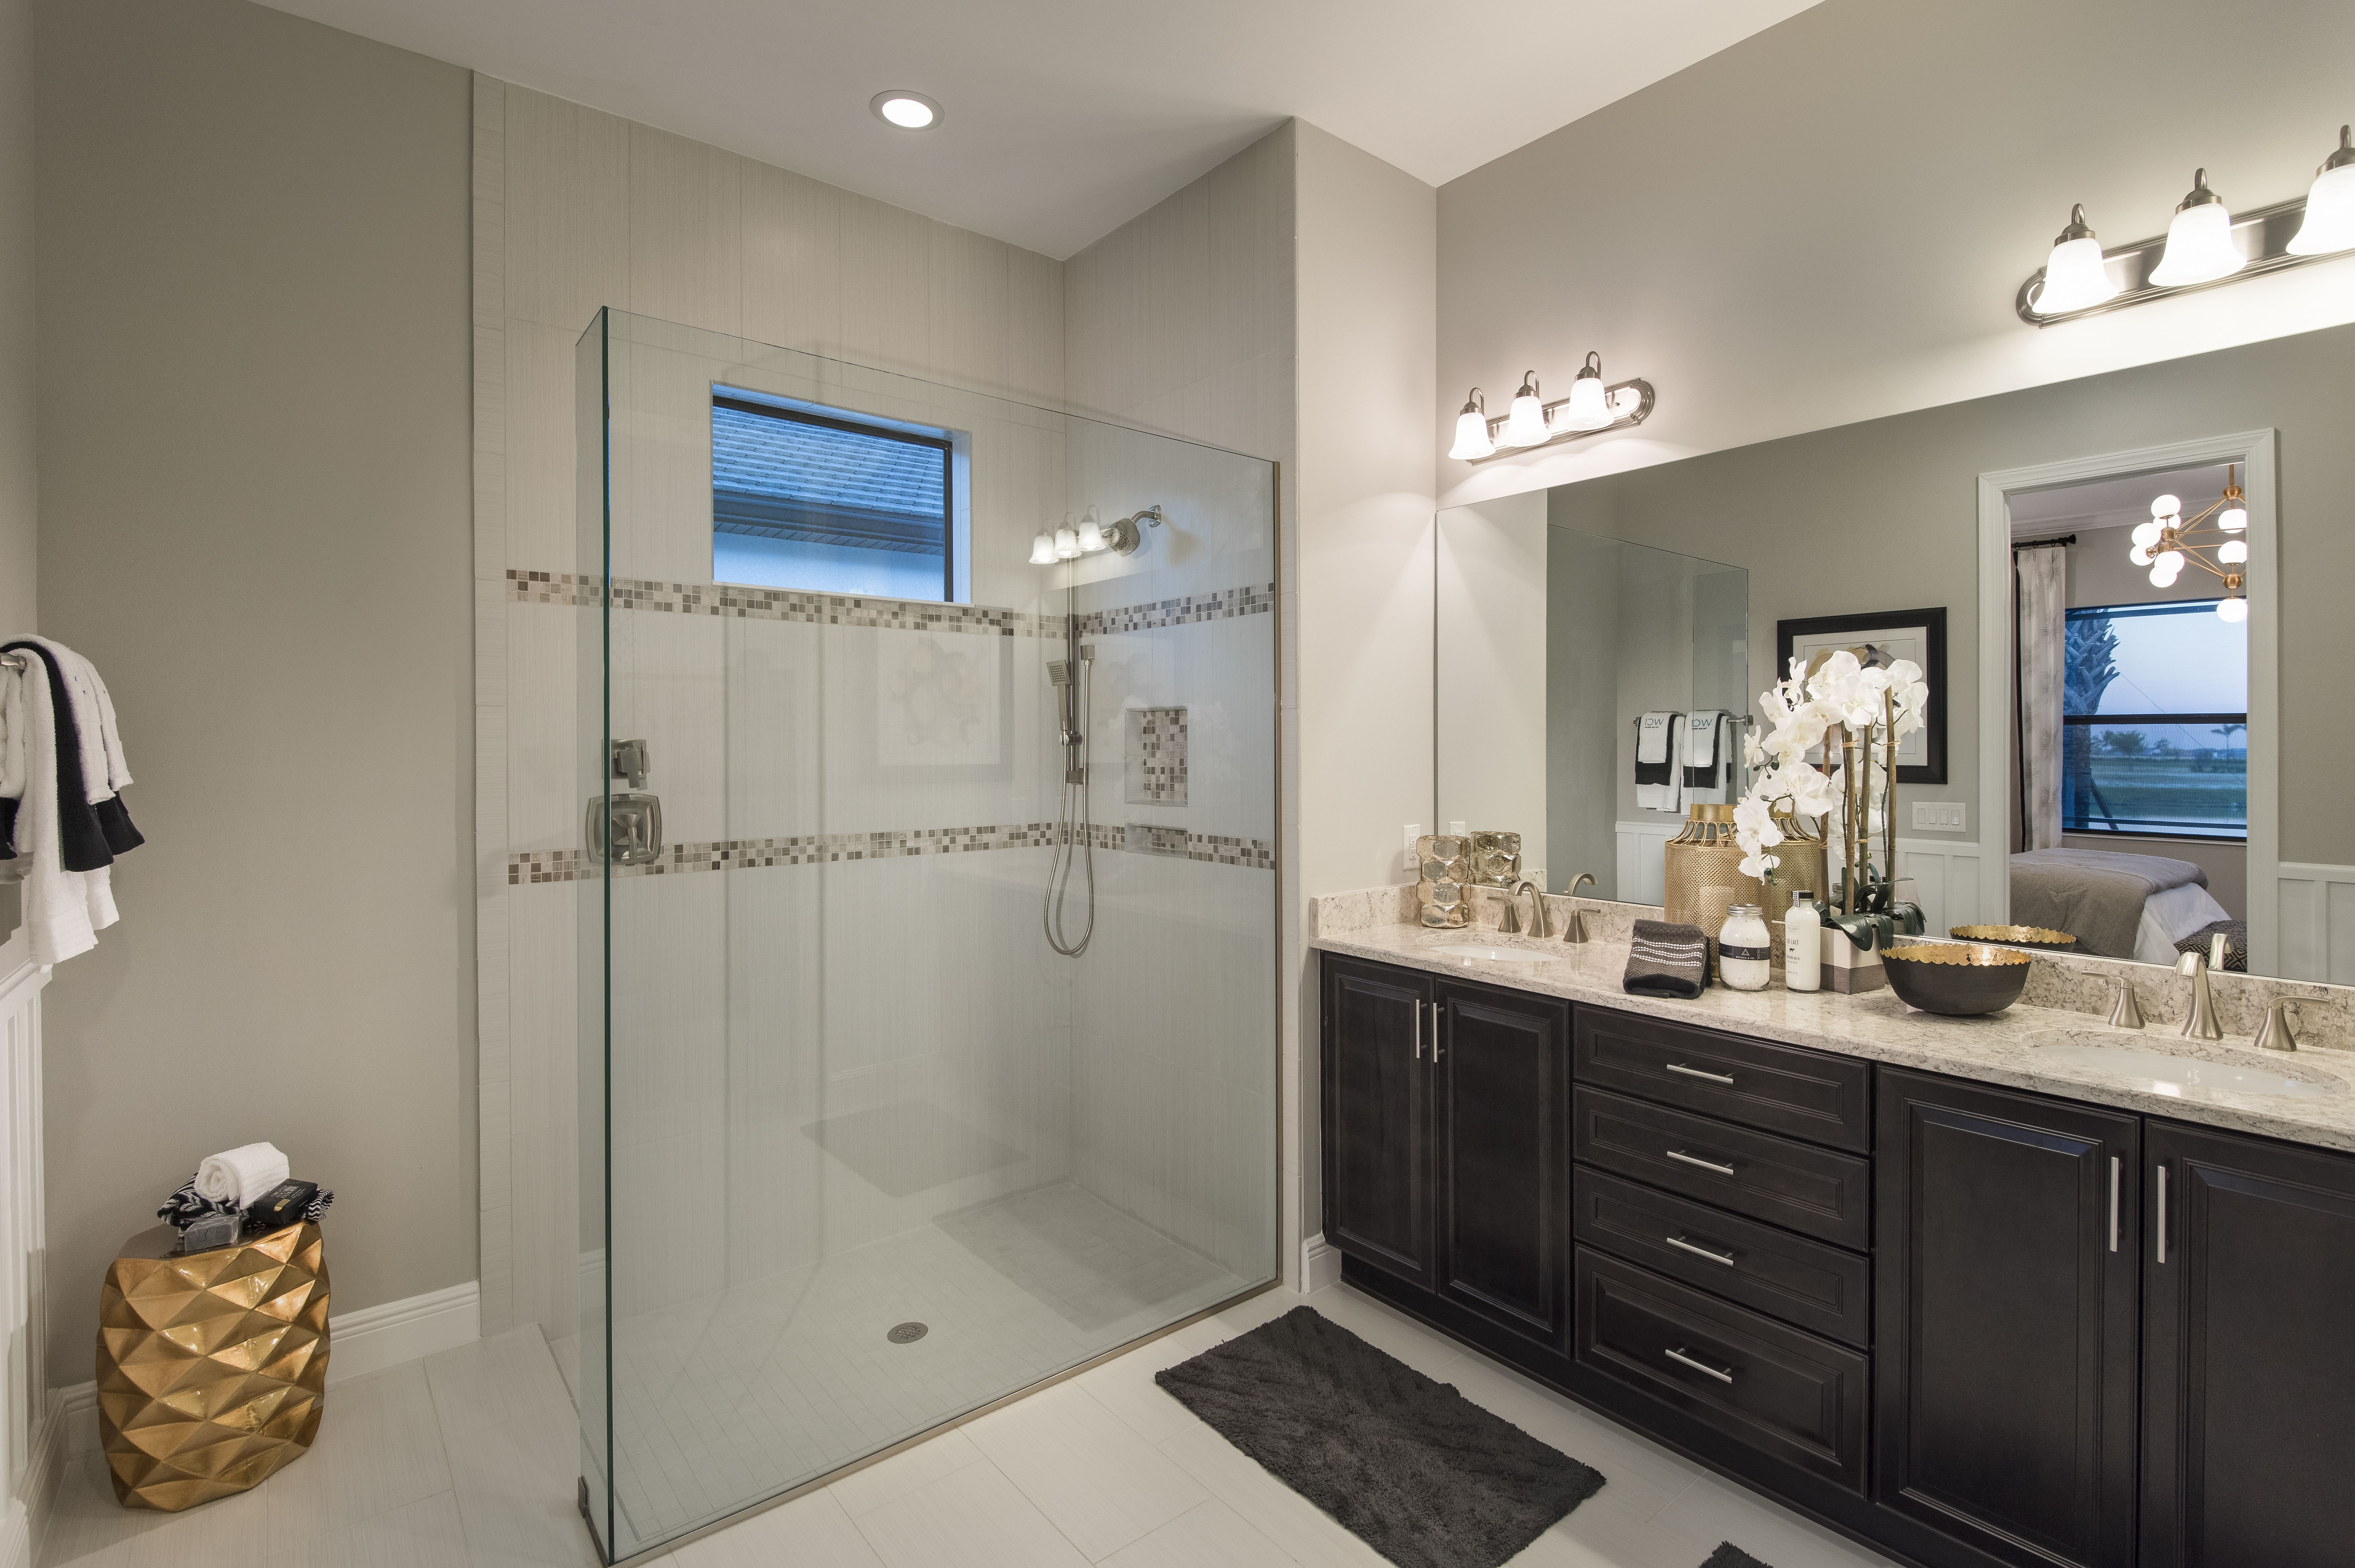 Use One Word To Describe This Guest Bathroom Bathroom Remodel Shower Amazing Bathrooms Bathrooms Remodel [ 4870 x 7313 Pixel ]